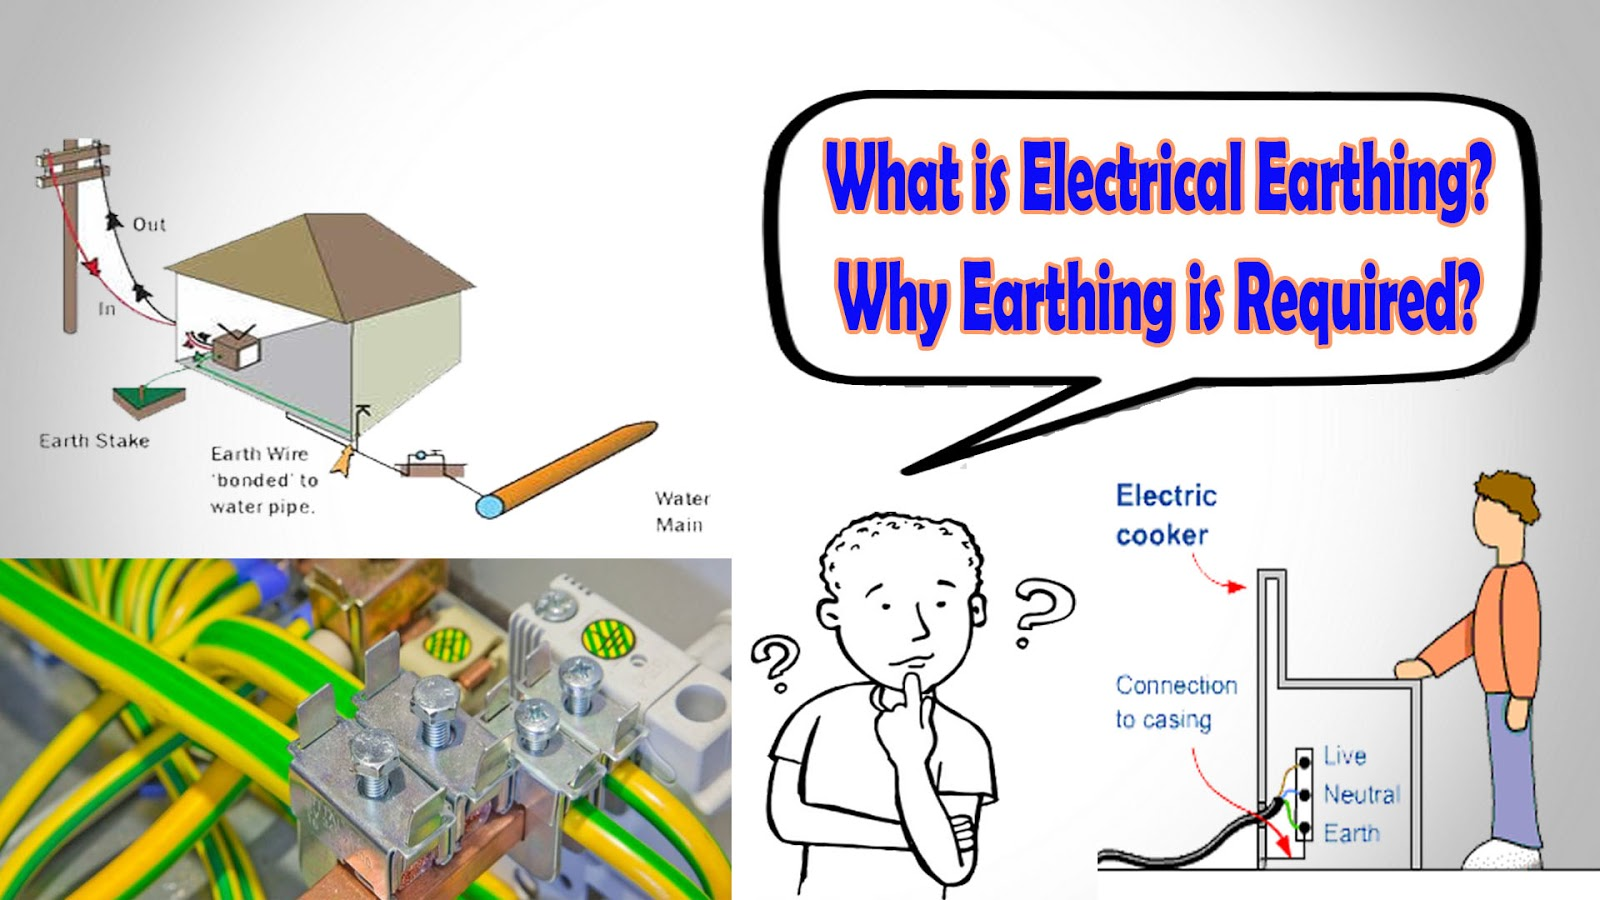 Electrical Earthing - Why Earthing is Required?